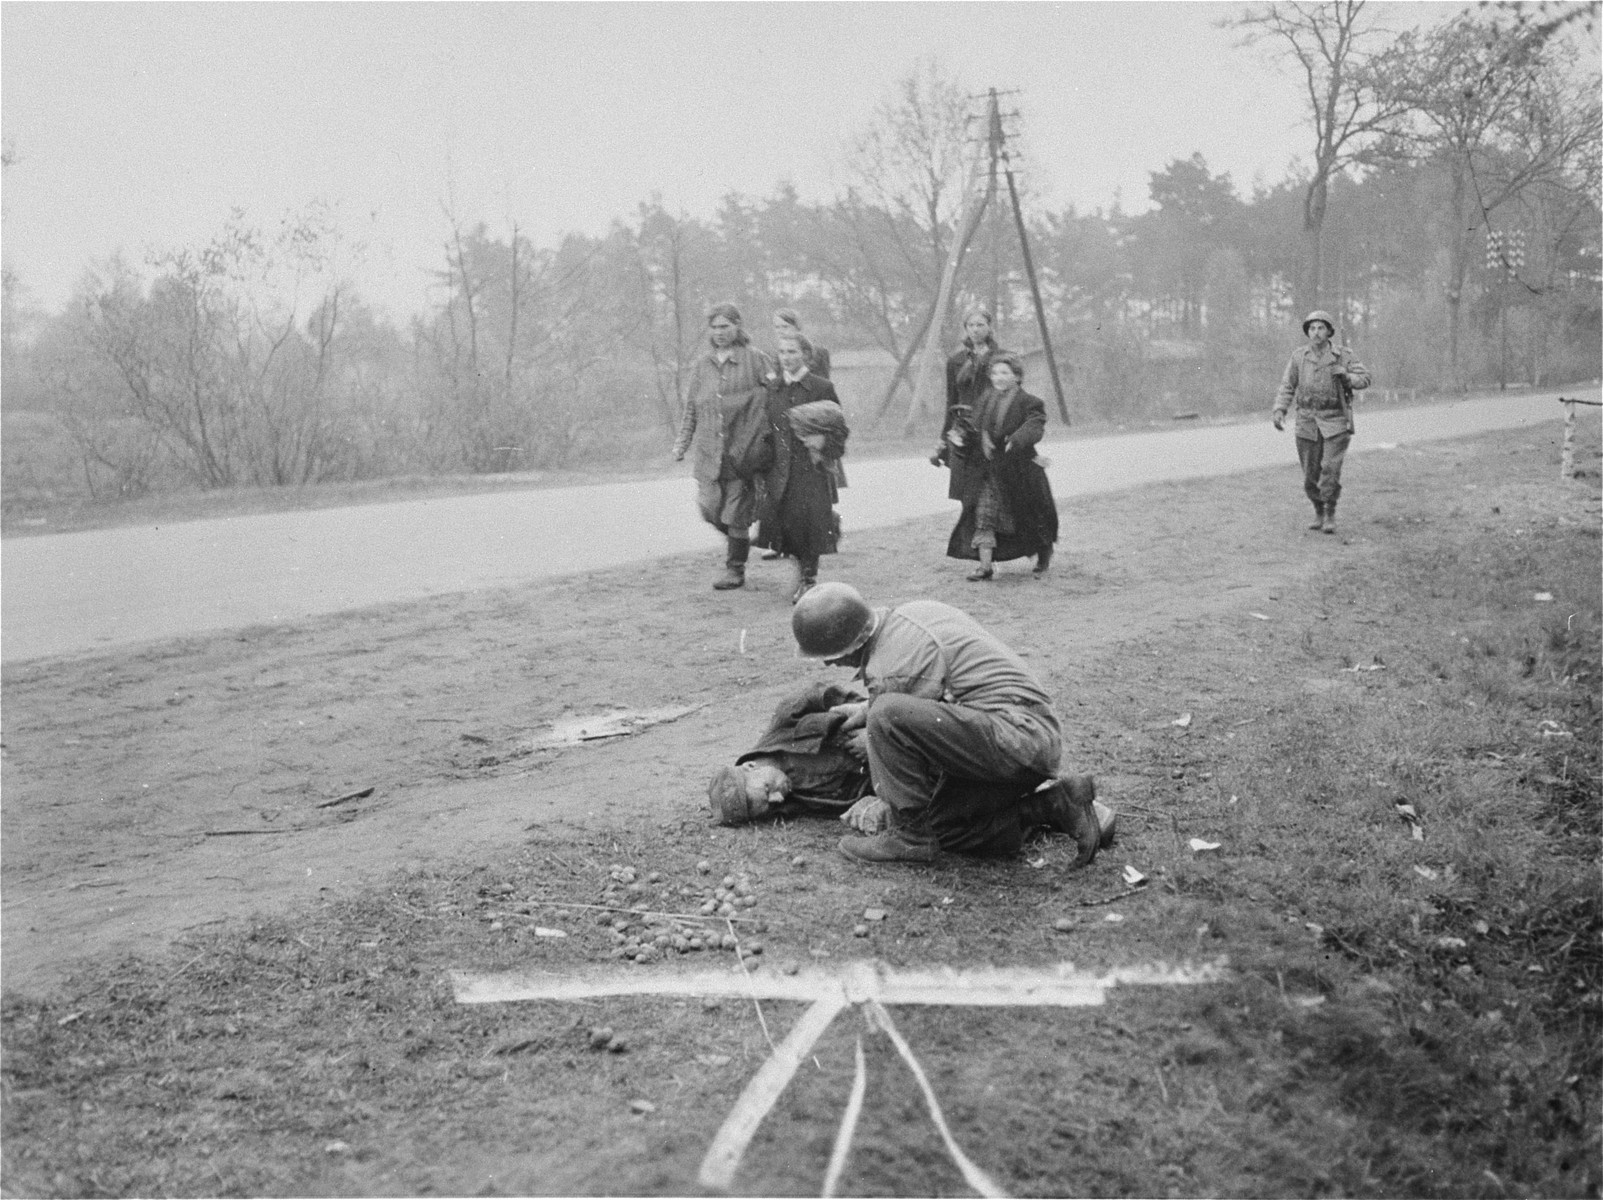 A Polish survivor from the Woebbelin concentration camp, drops dead from malnutrition at the side of the road shortly after his liberation.  A U.S. soldier tries in vain to administer aid to the man, while in the background liberated Polish women pass by carrying shoes confiscated from local German women.